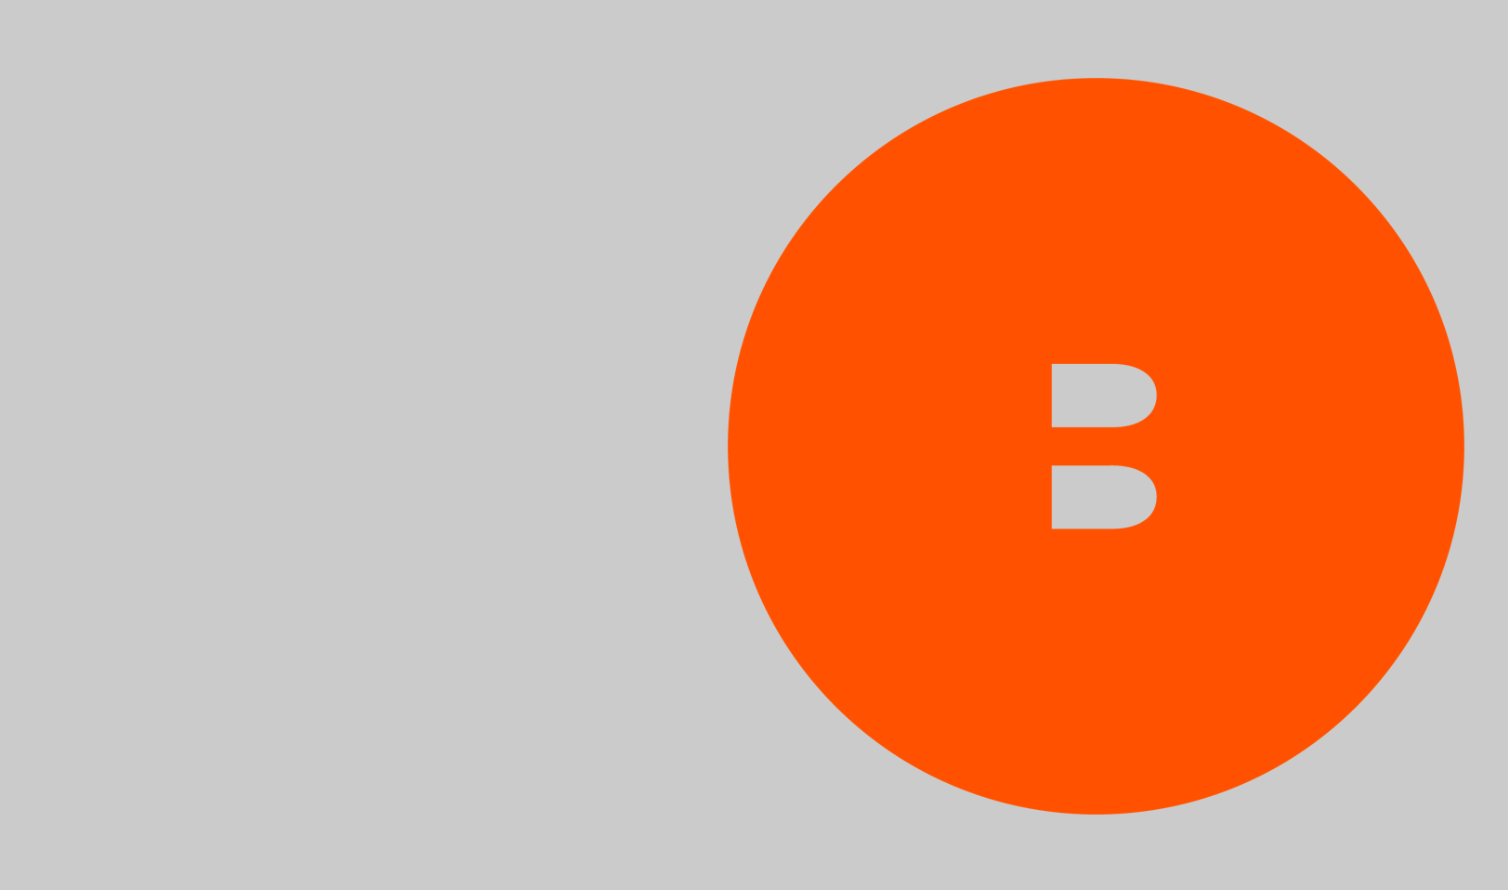 Bold Orange Company Adds Five New Hires As Company Shows Steady, Rapid Growth